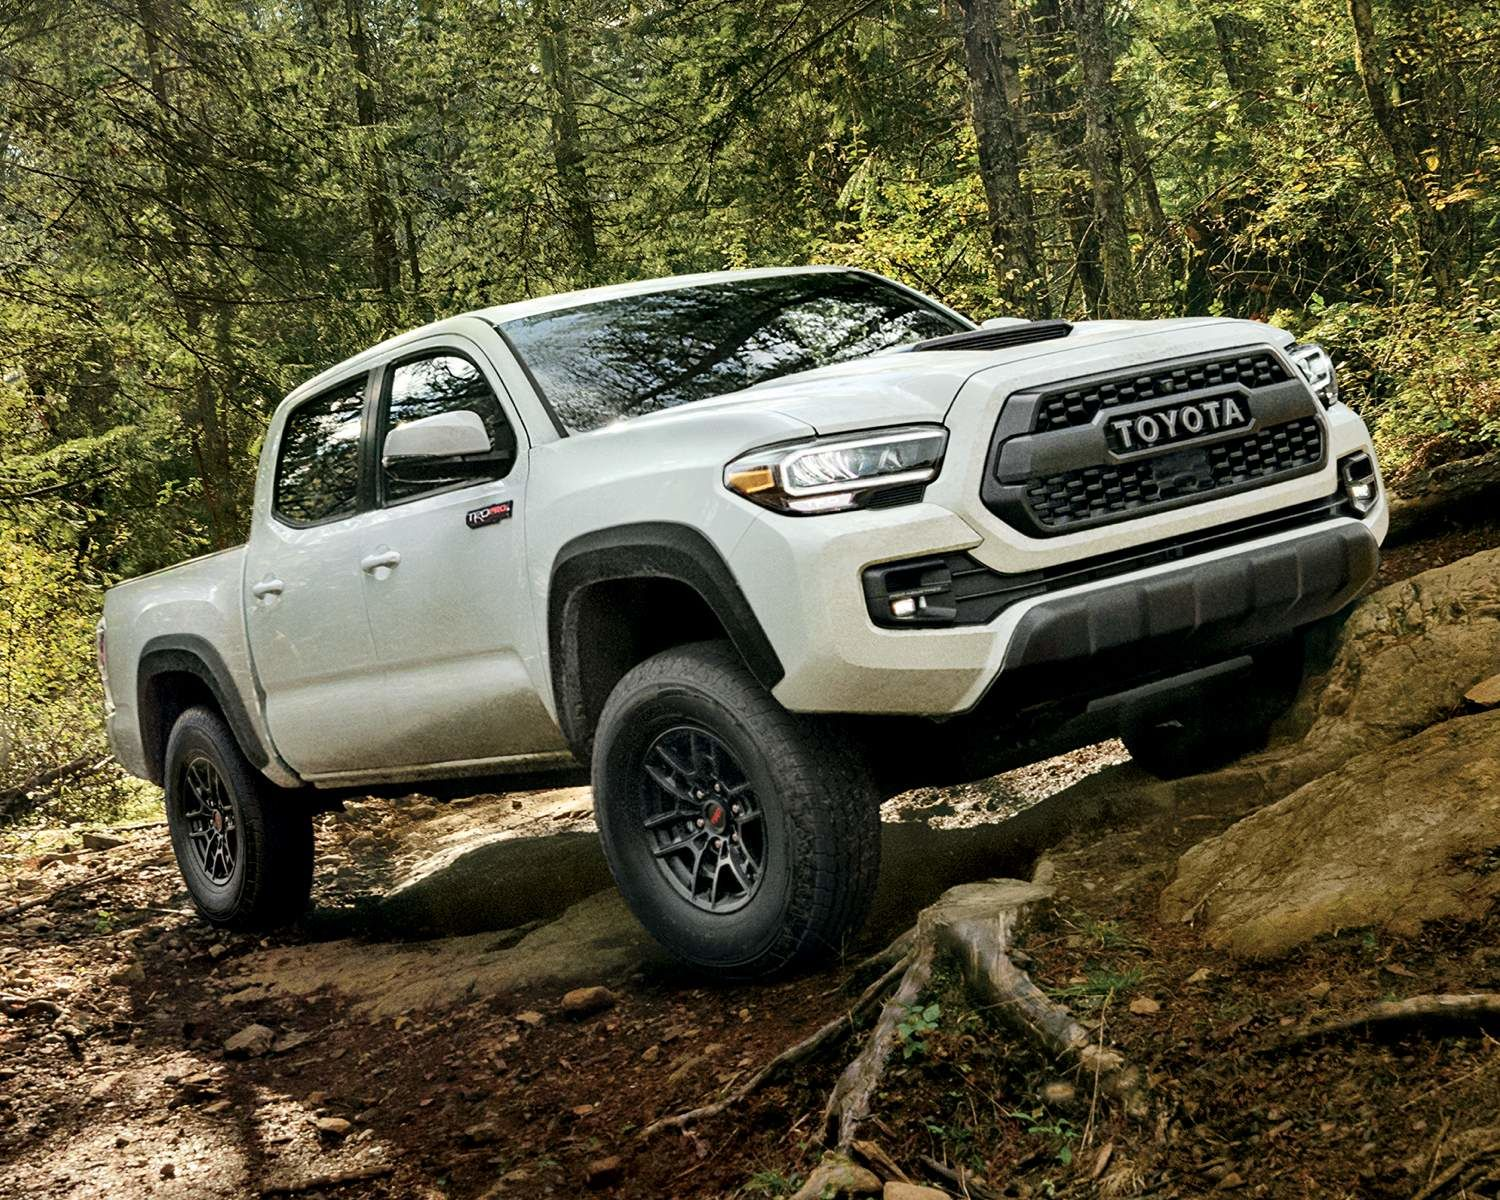 Toyota 2021 White Tacoma parked uphill on a terrain